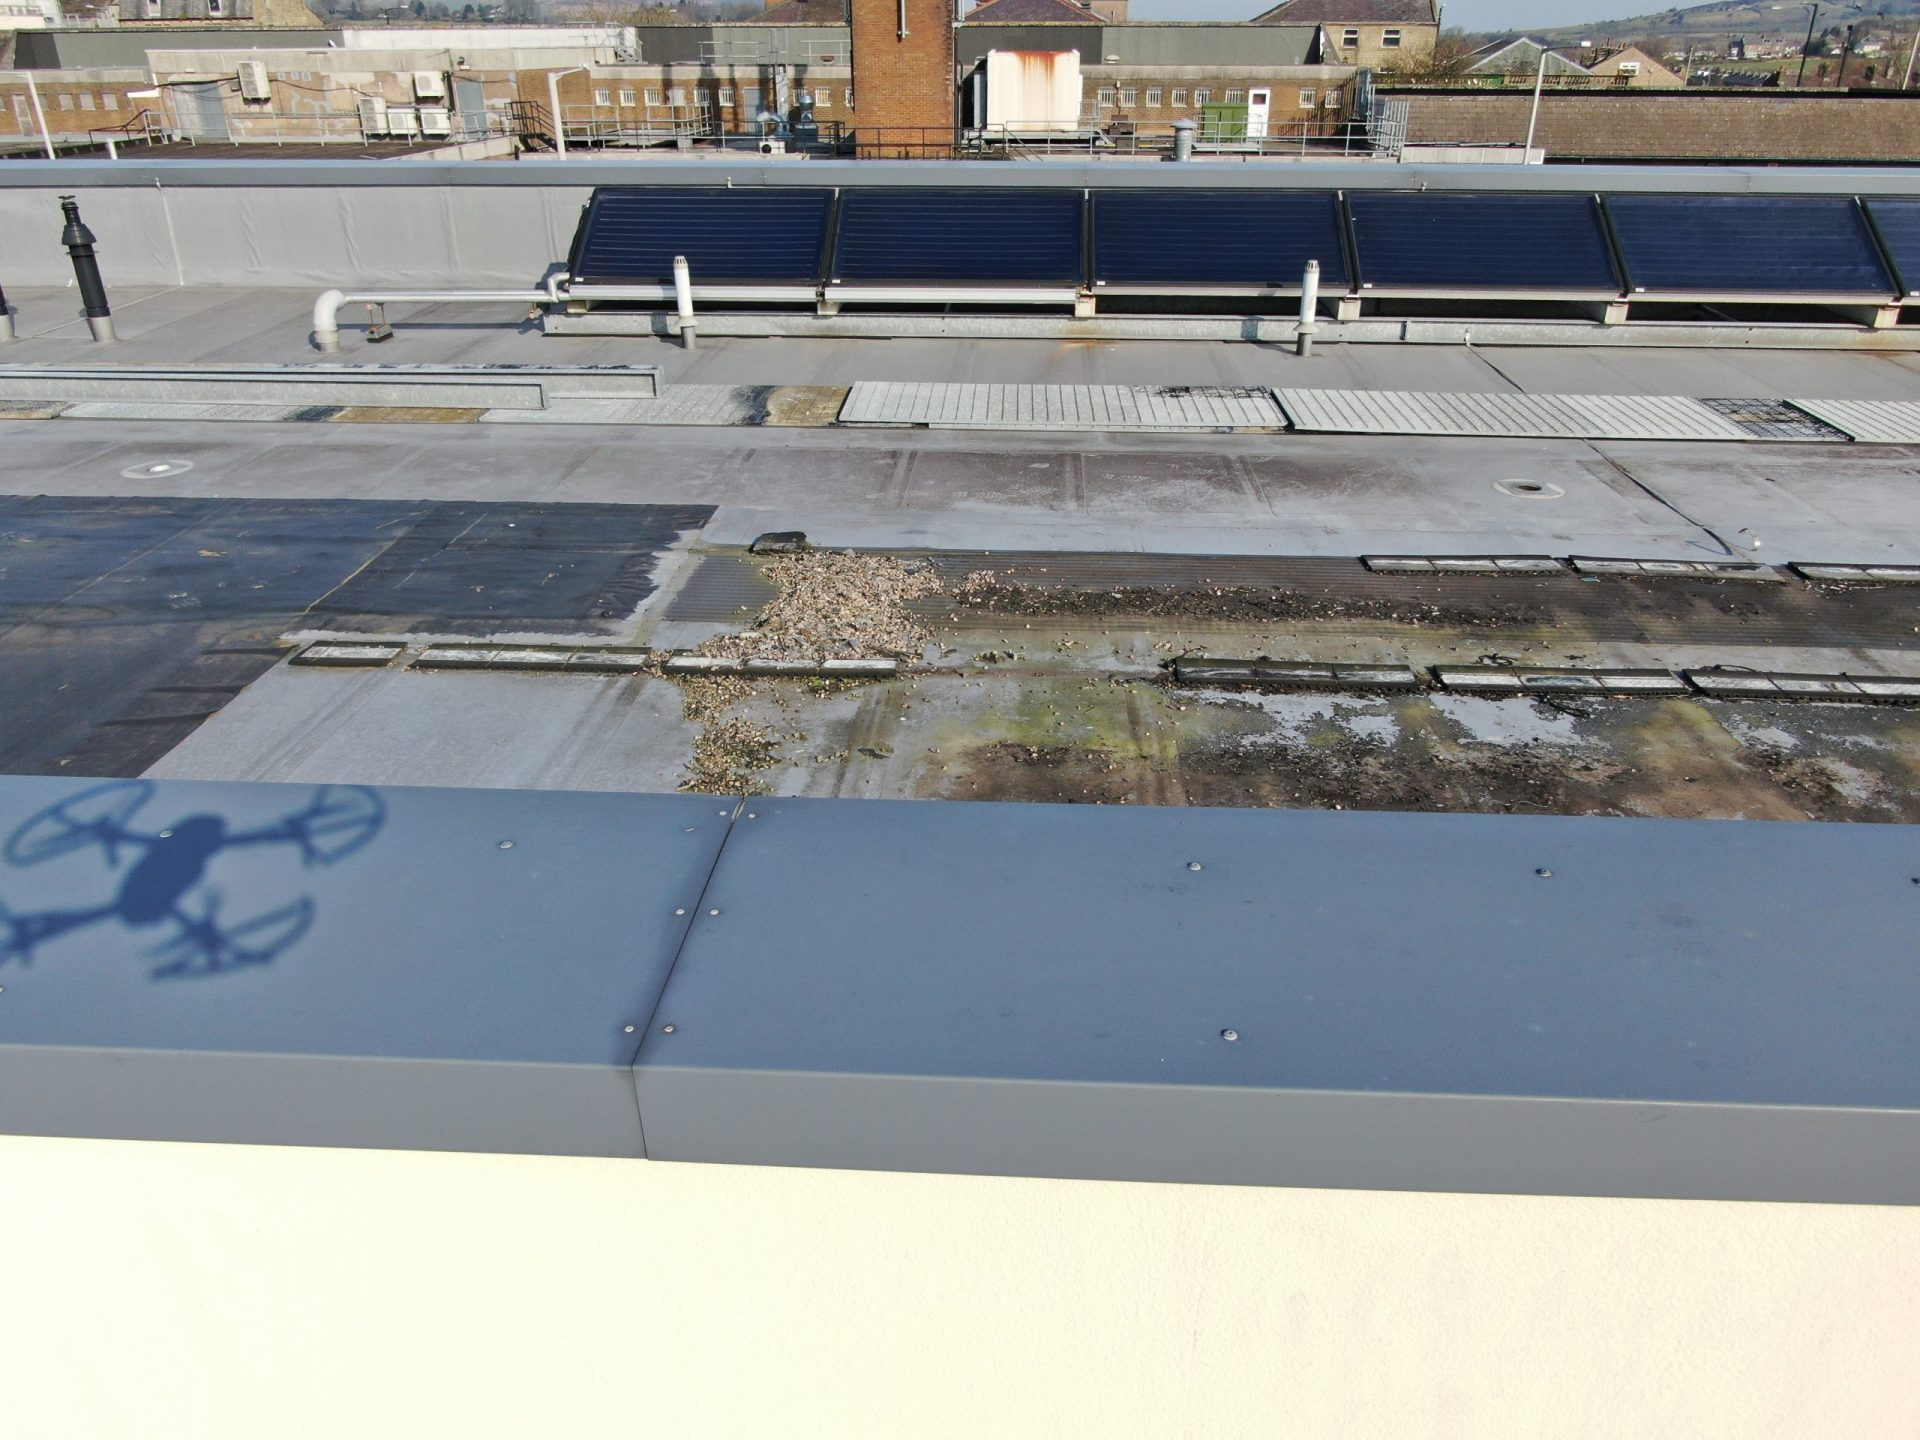 Roof Inspection by Drone Preston